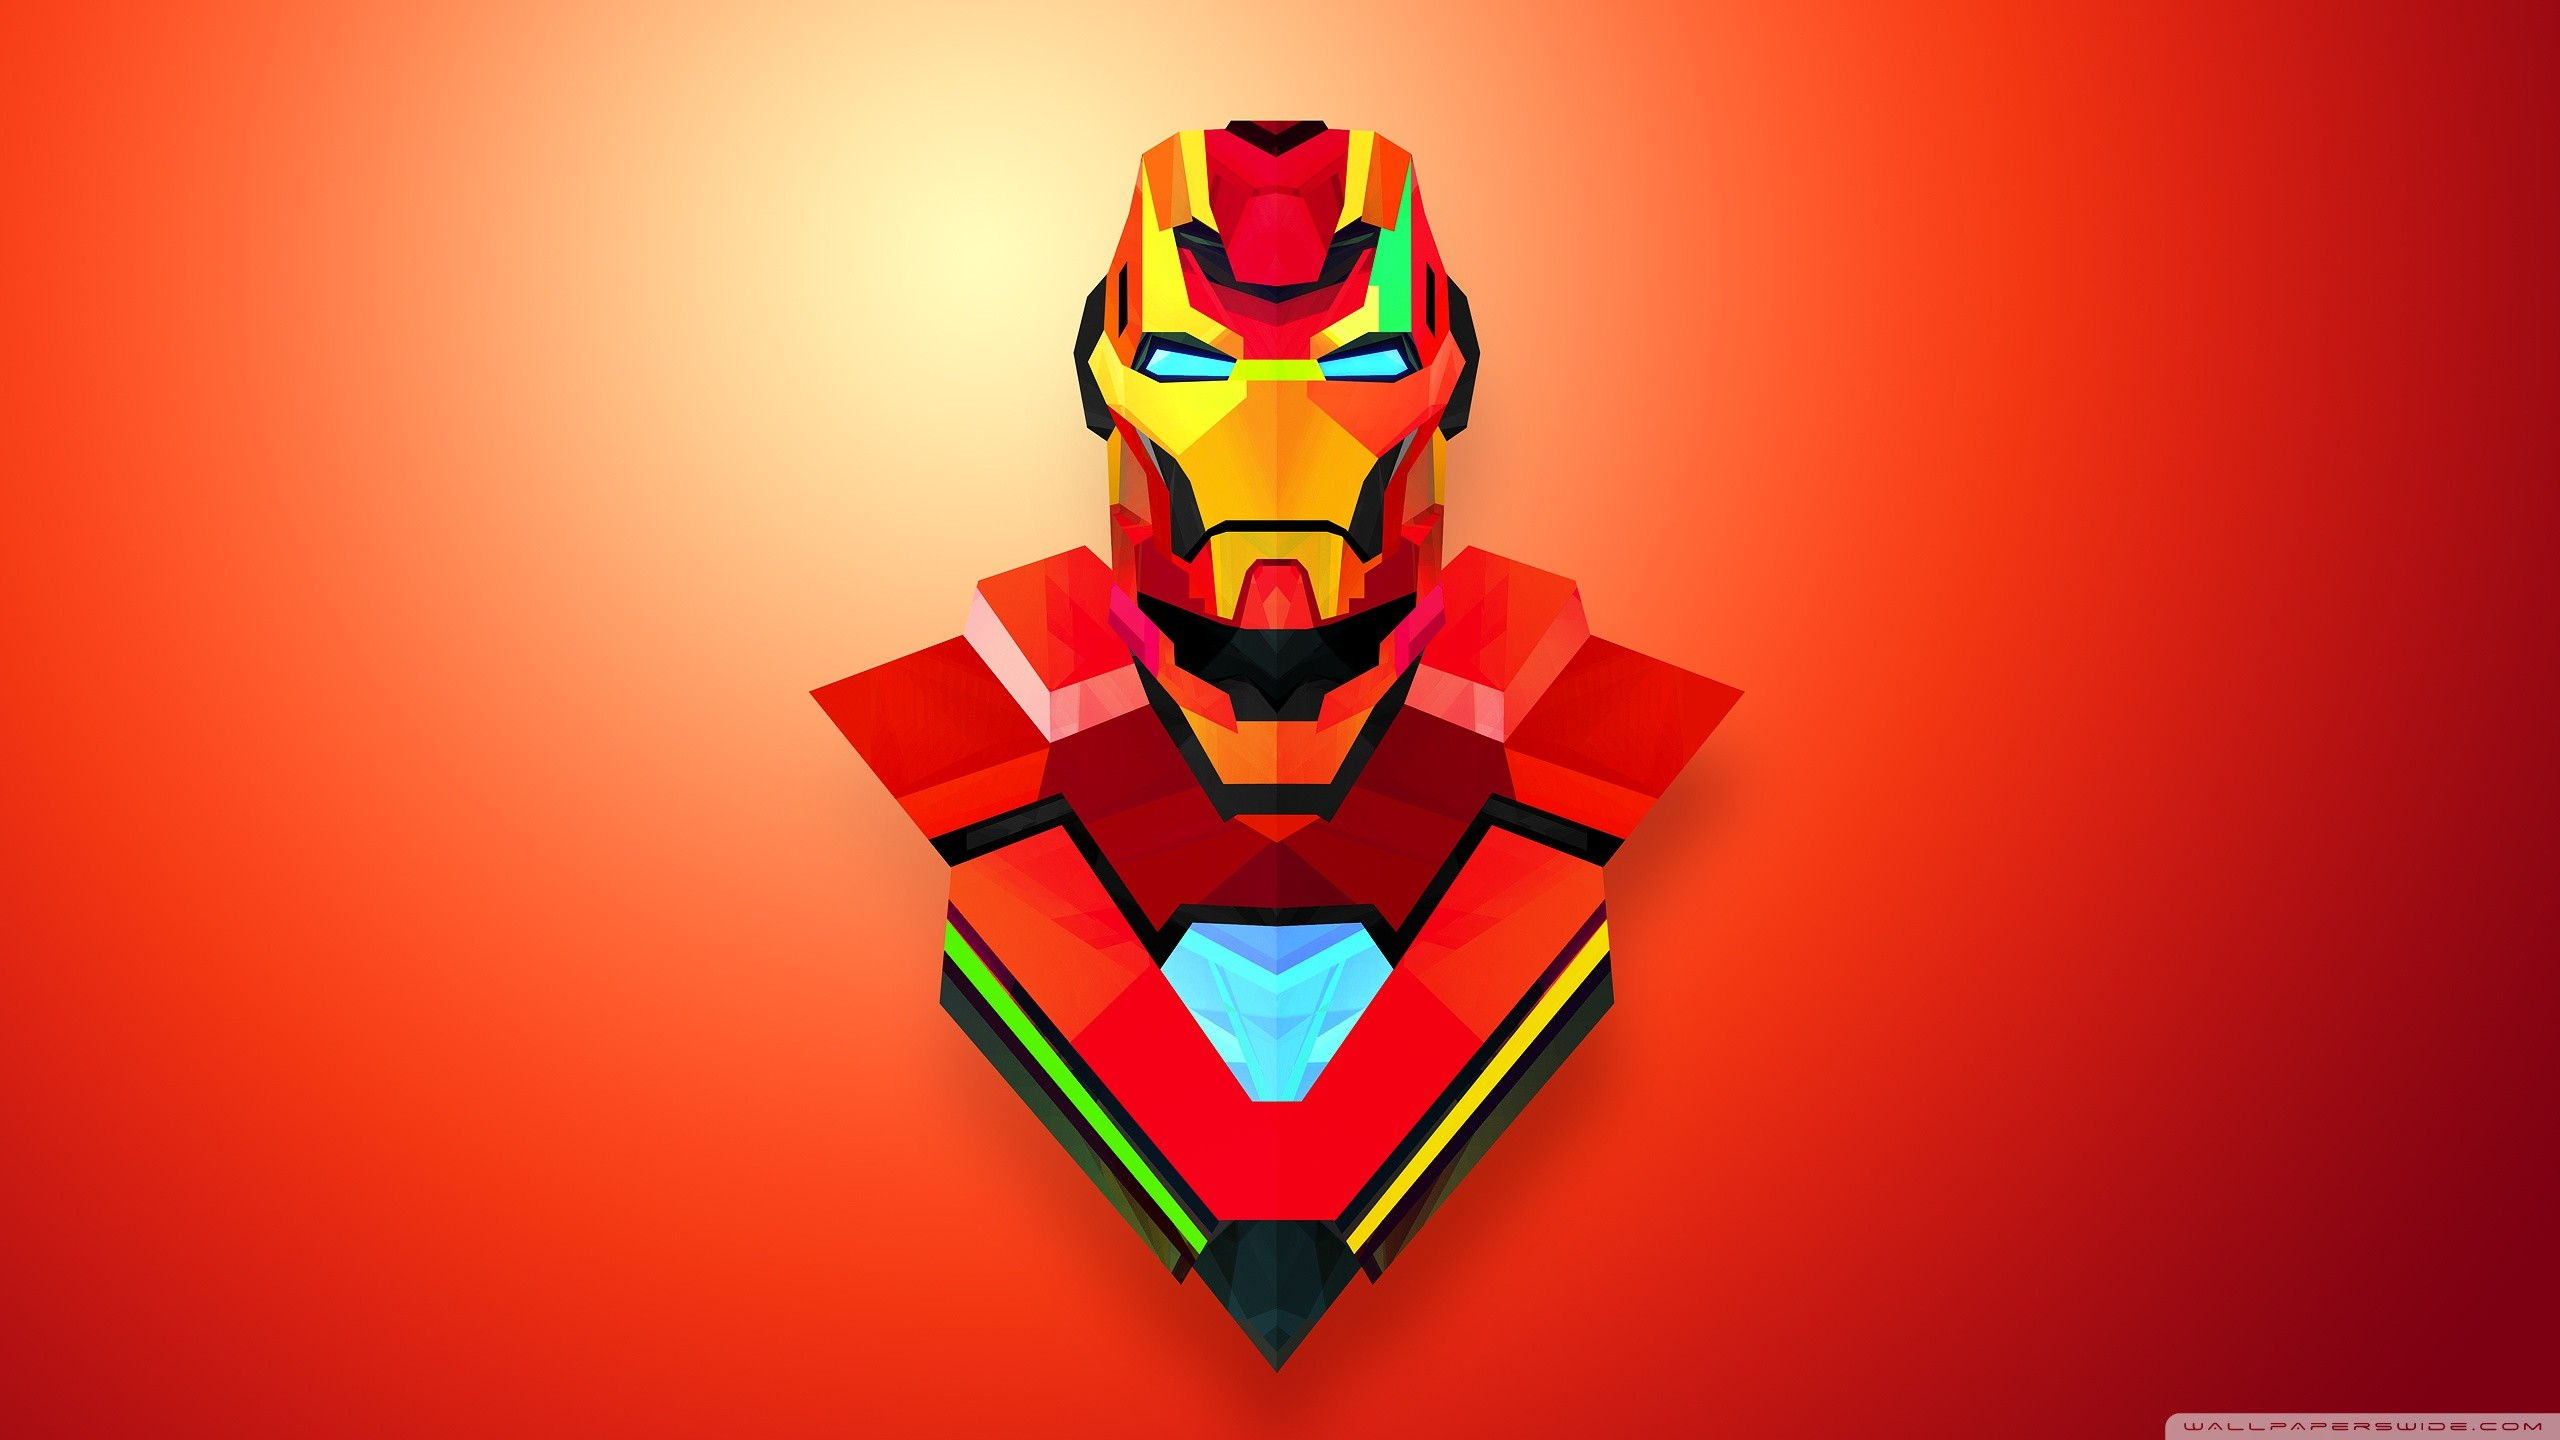 2560x1440 Iron Man Abstract Art HD Wide Wallpaper for Widescreen